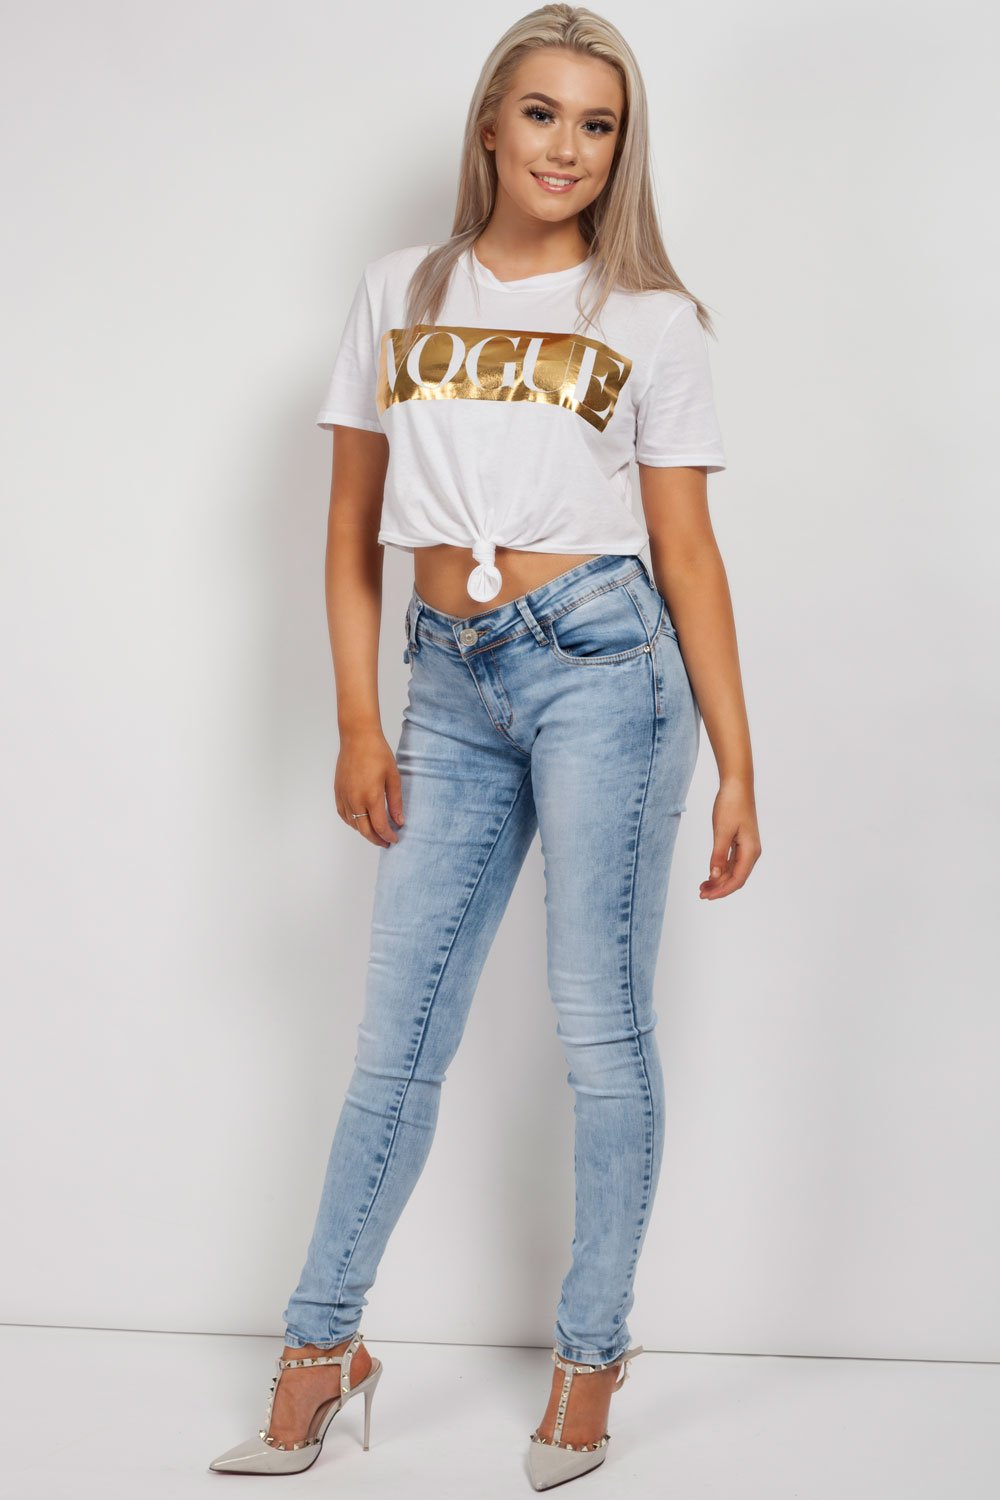 vogue cropped top white